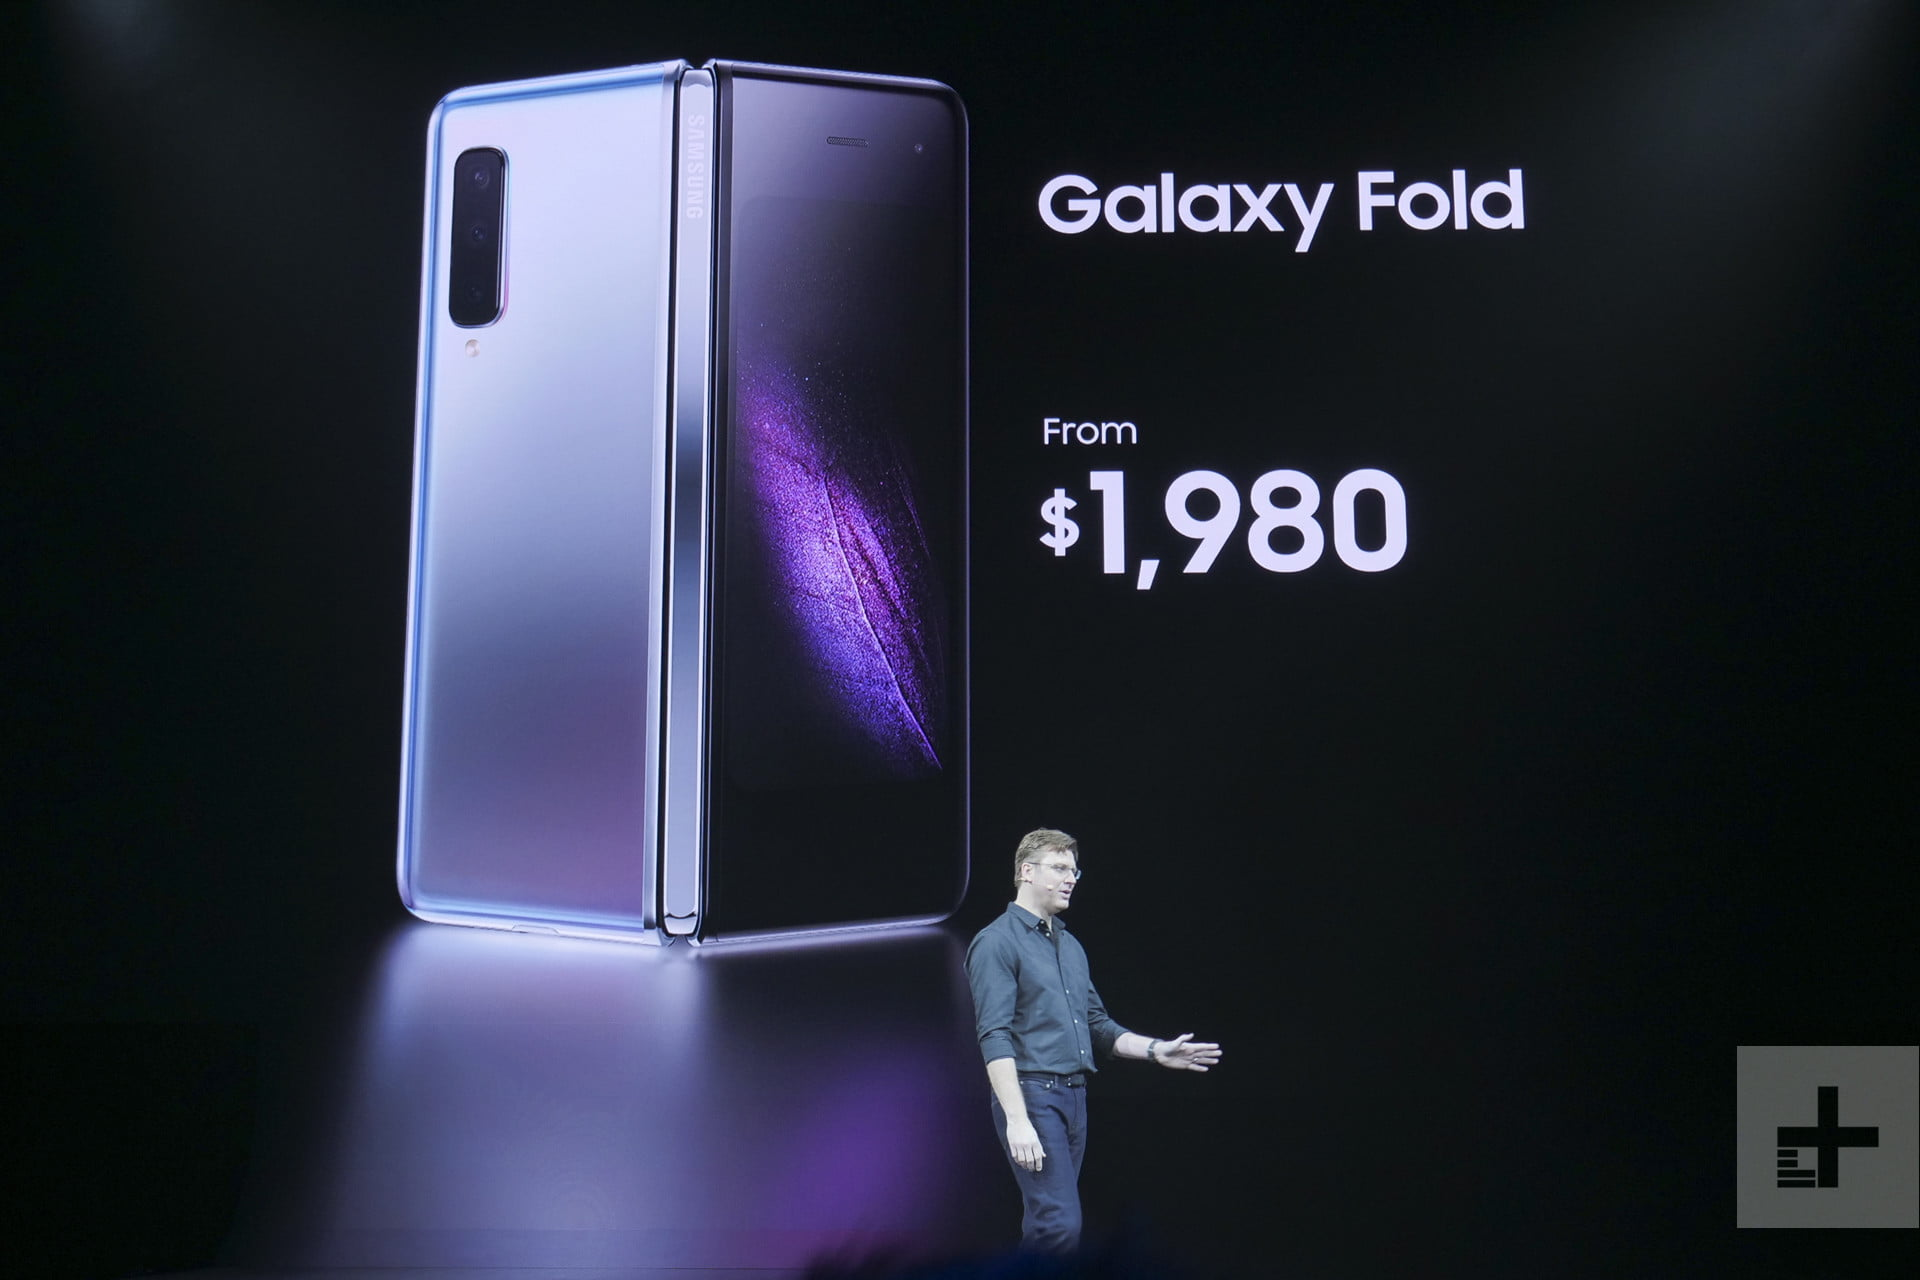 Samsung Galaxy Fold: Specs, Features, Price, Release Date